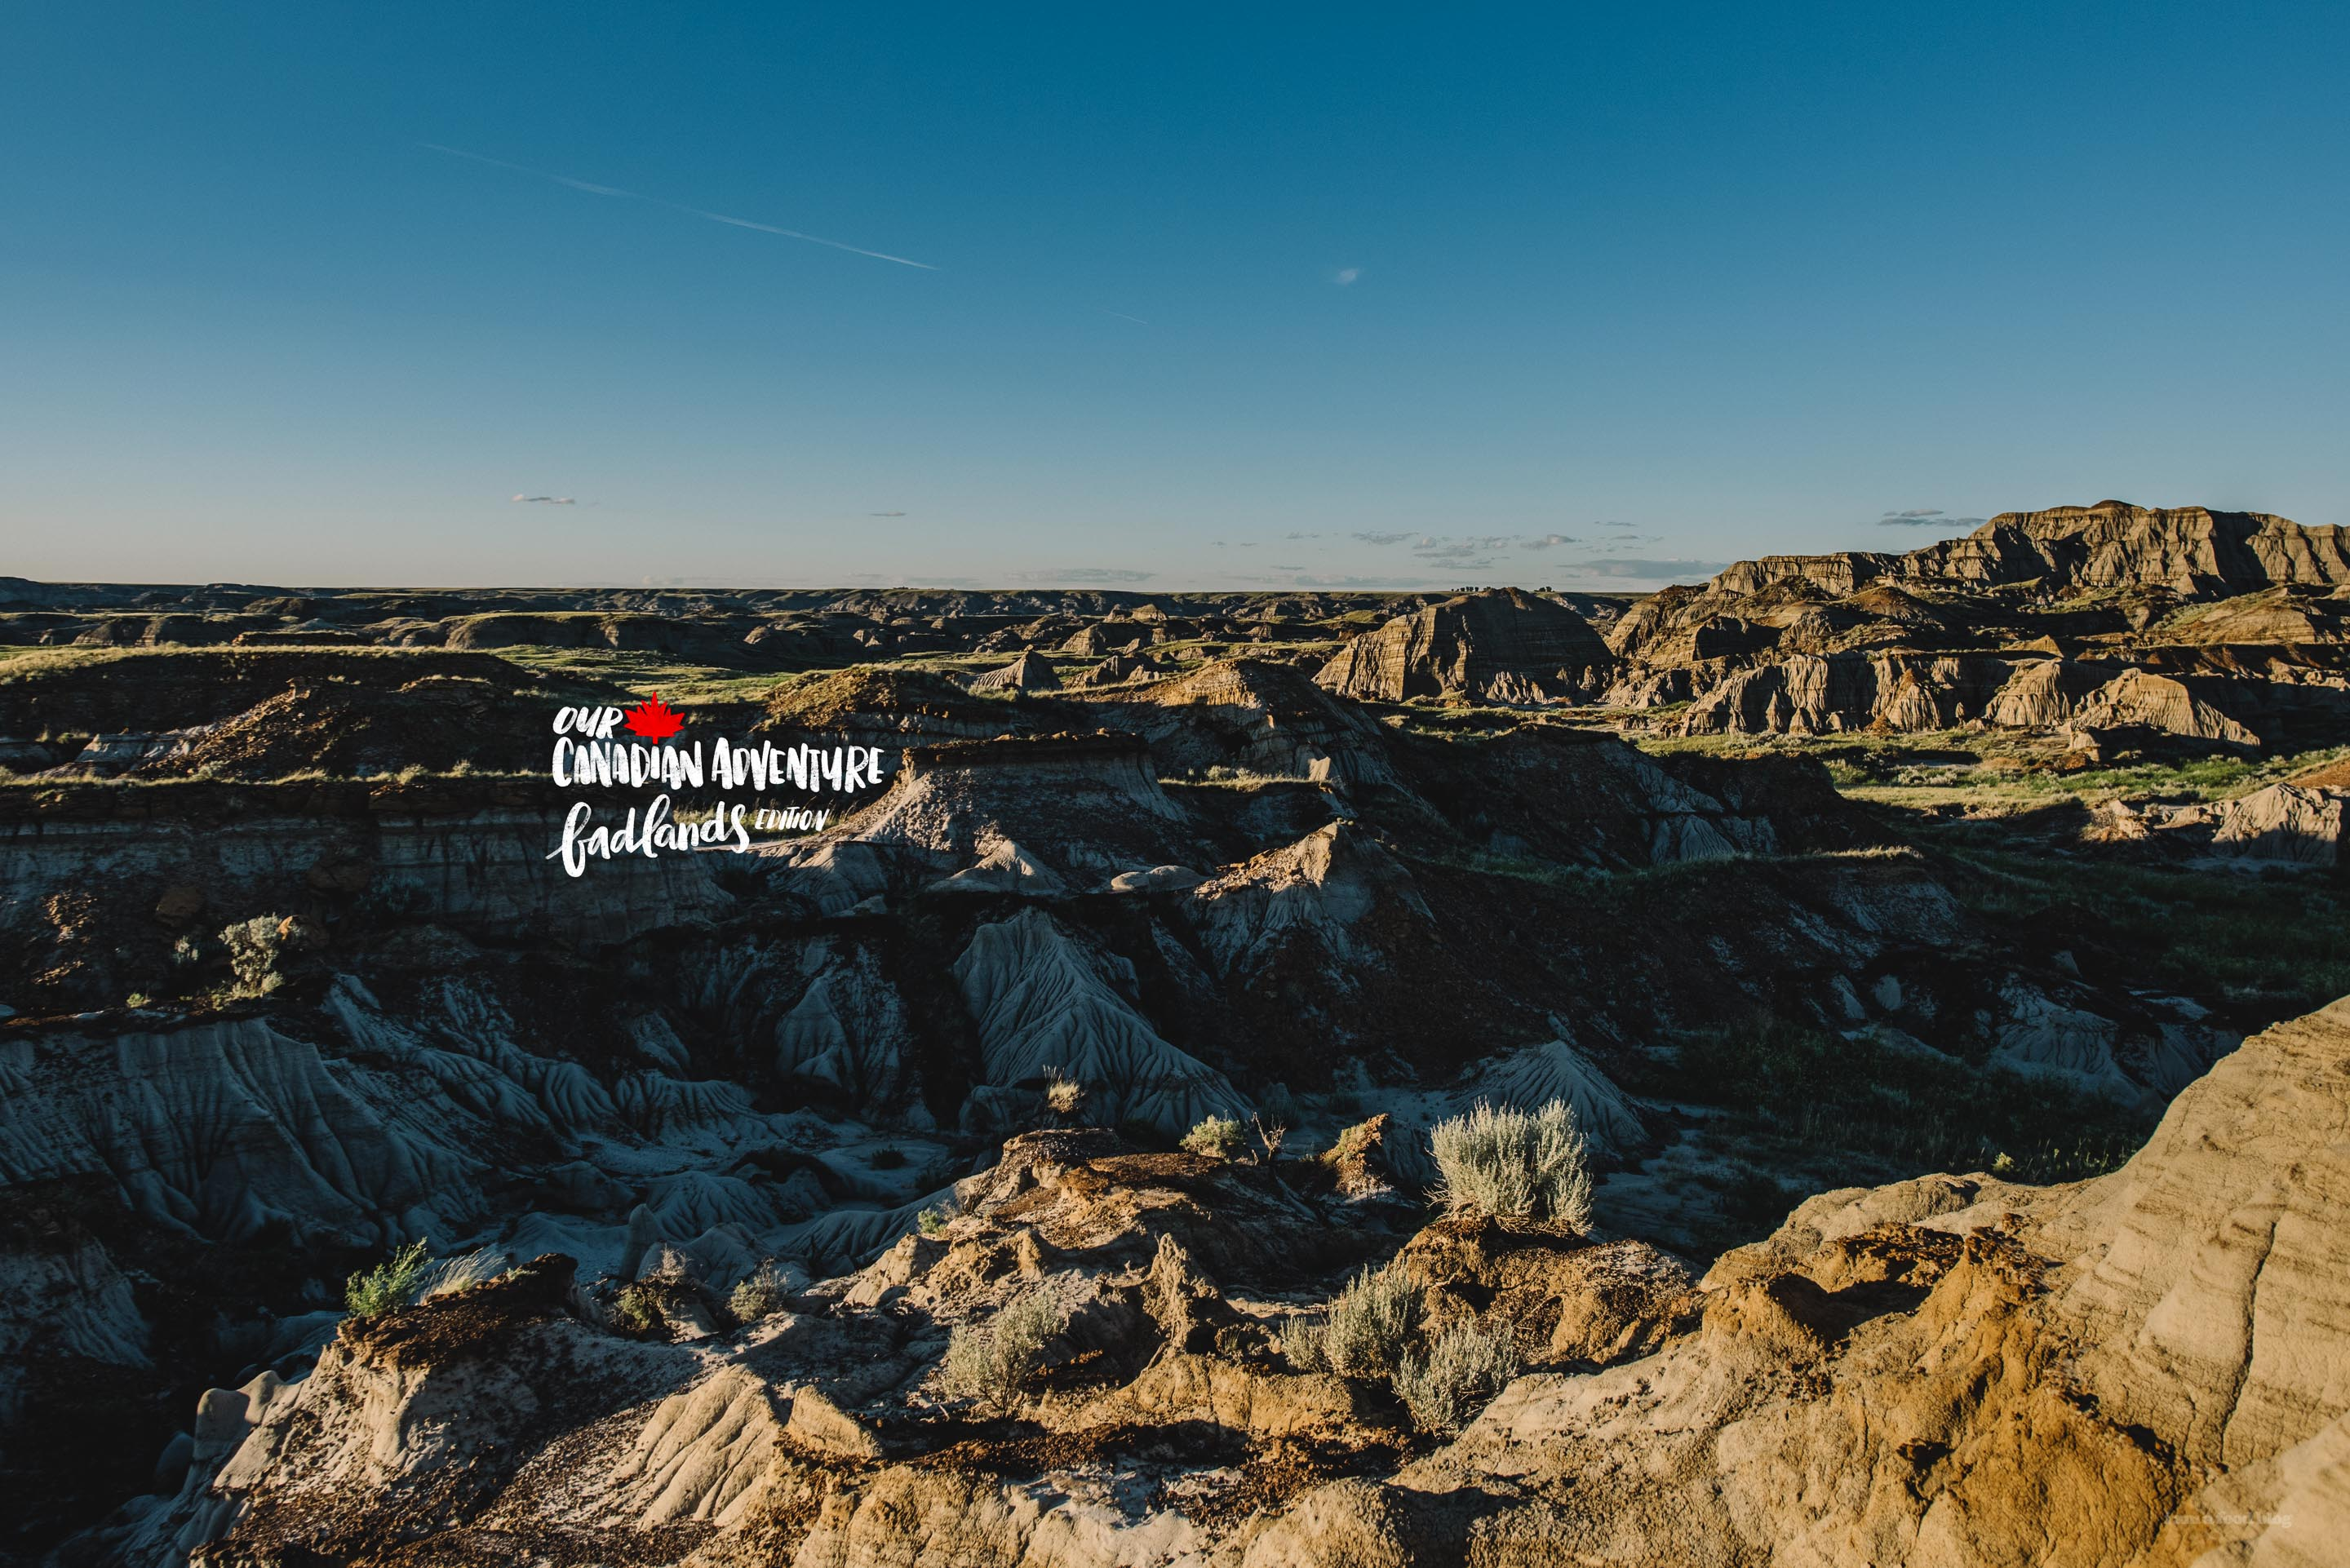 Our Canadian Adventure: the Alberta Badlands and Camping in Dinosaur Provincial Park